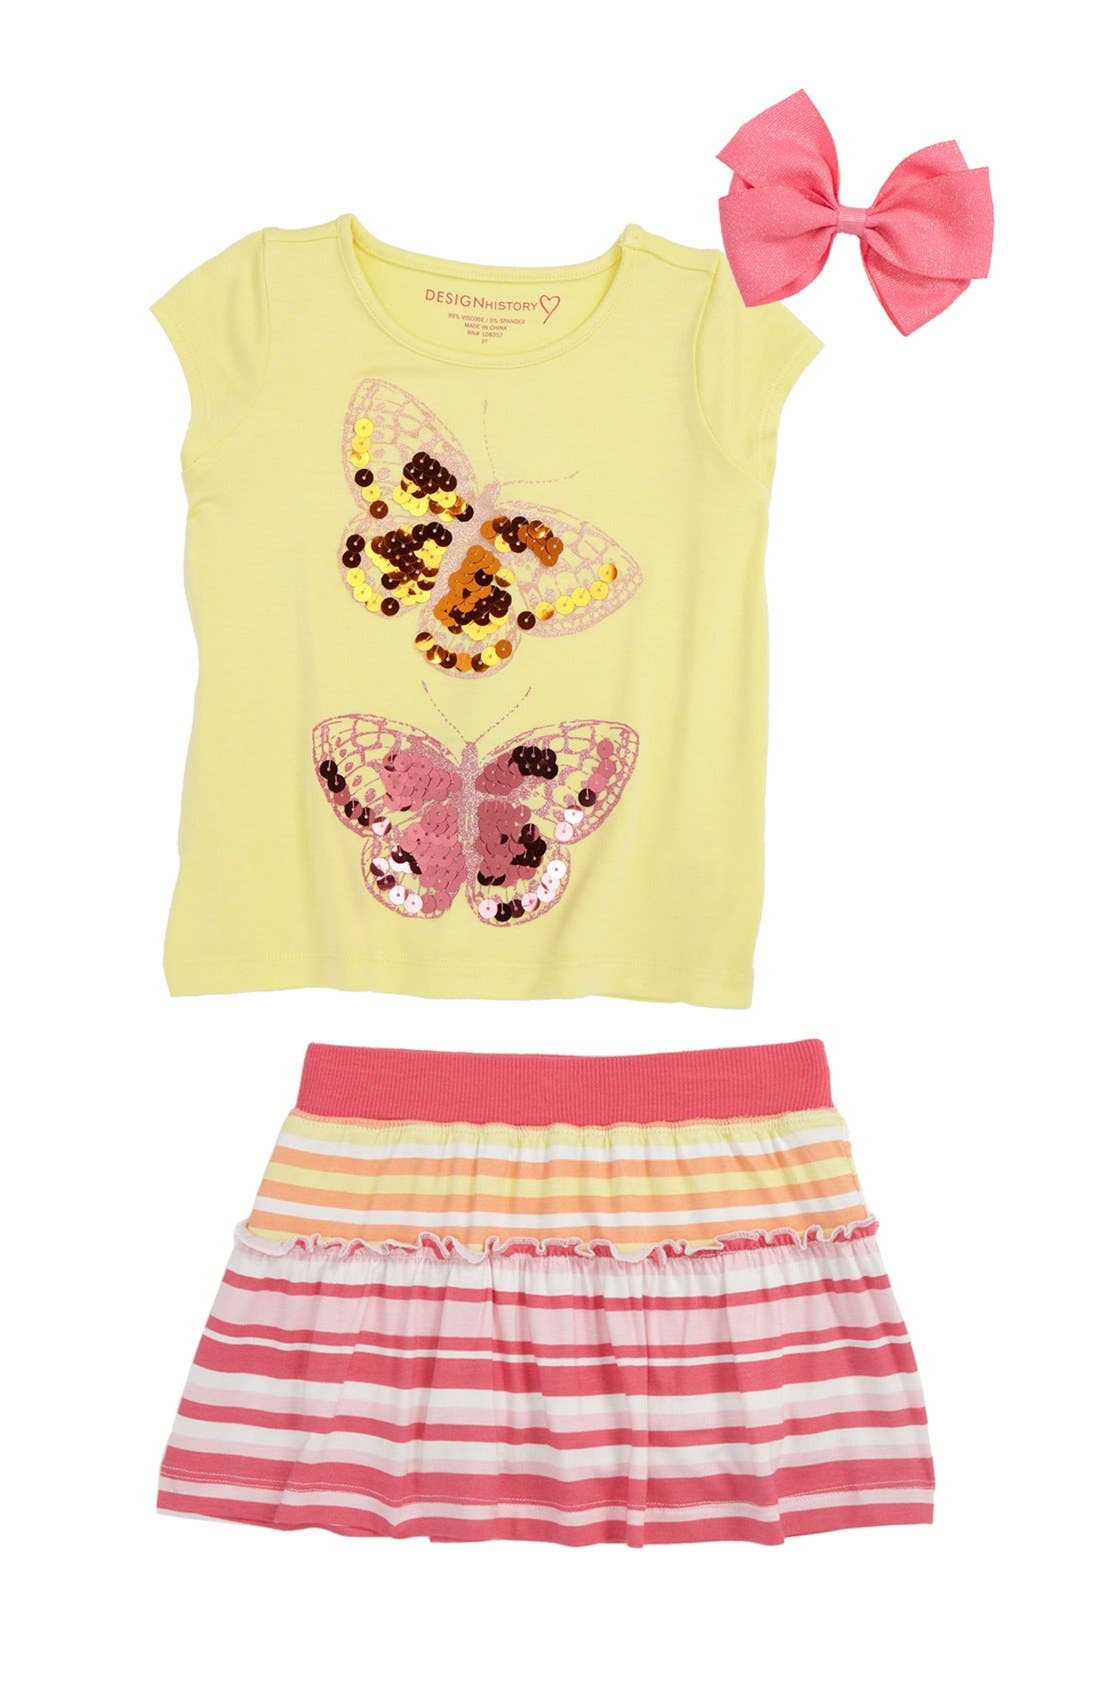 Alternate Image 1 Selected - Design History Tee & Skort & PLH Bows & Laces Hair Clip (Toddler)